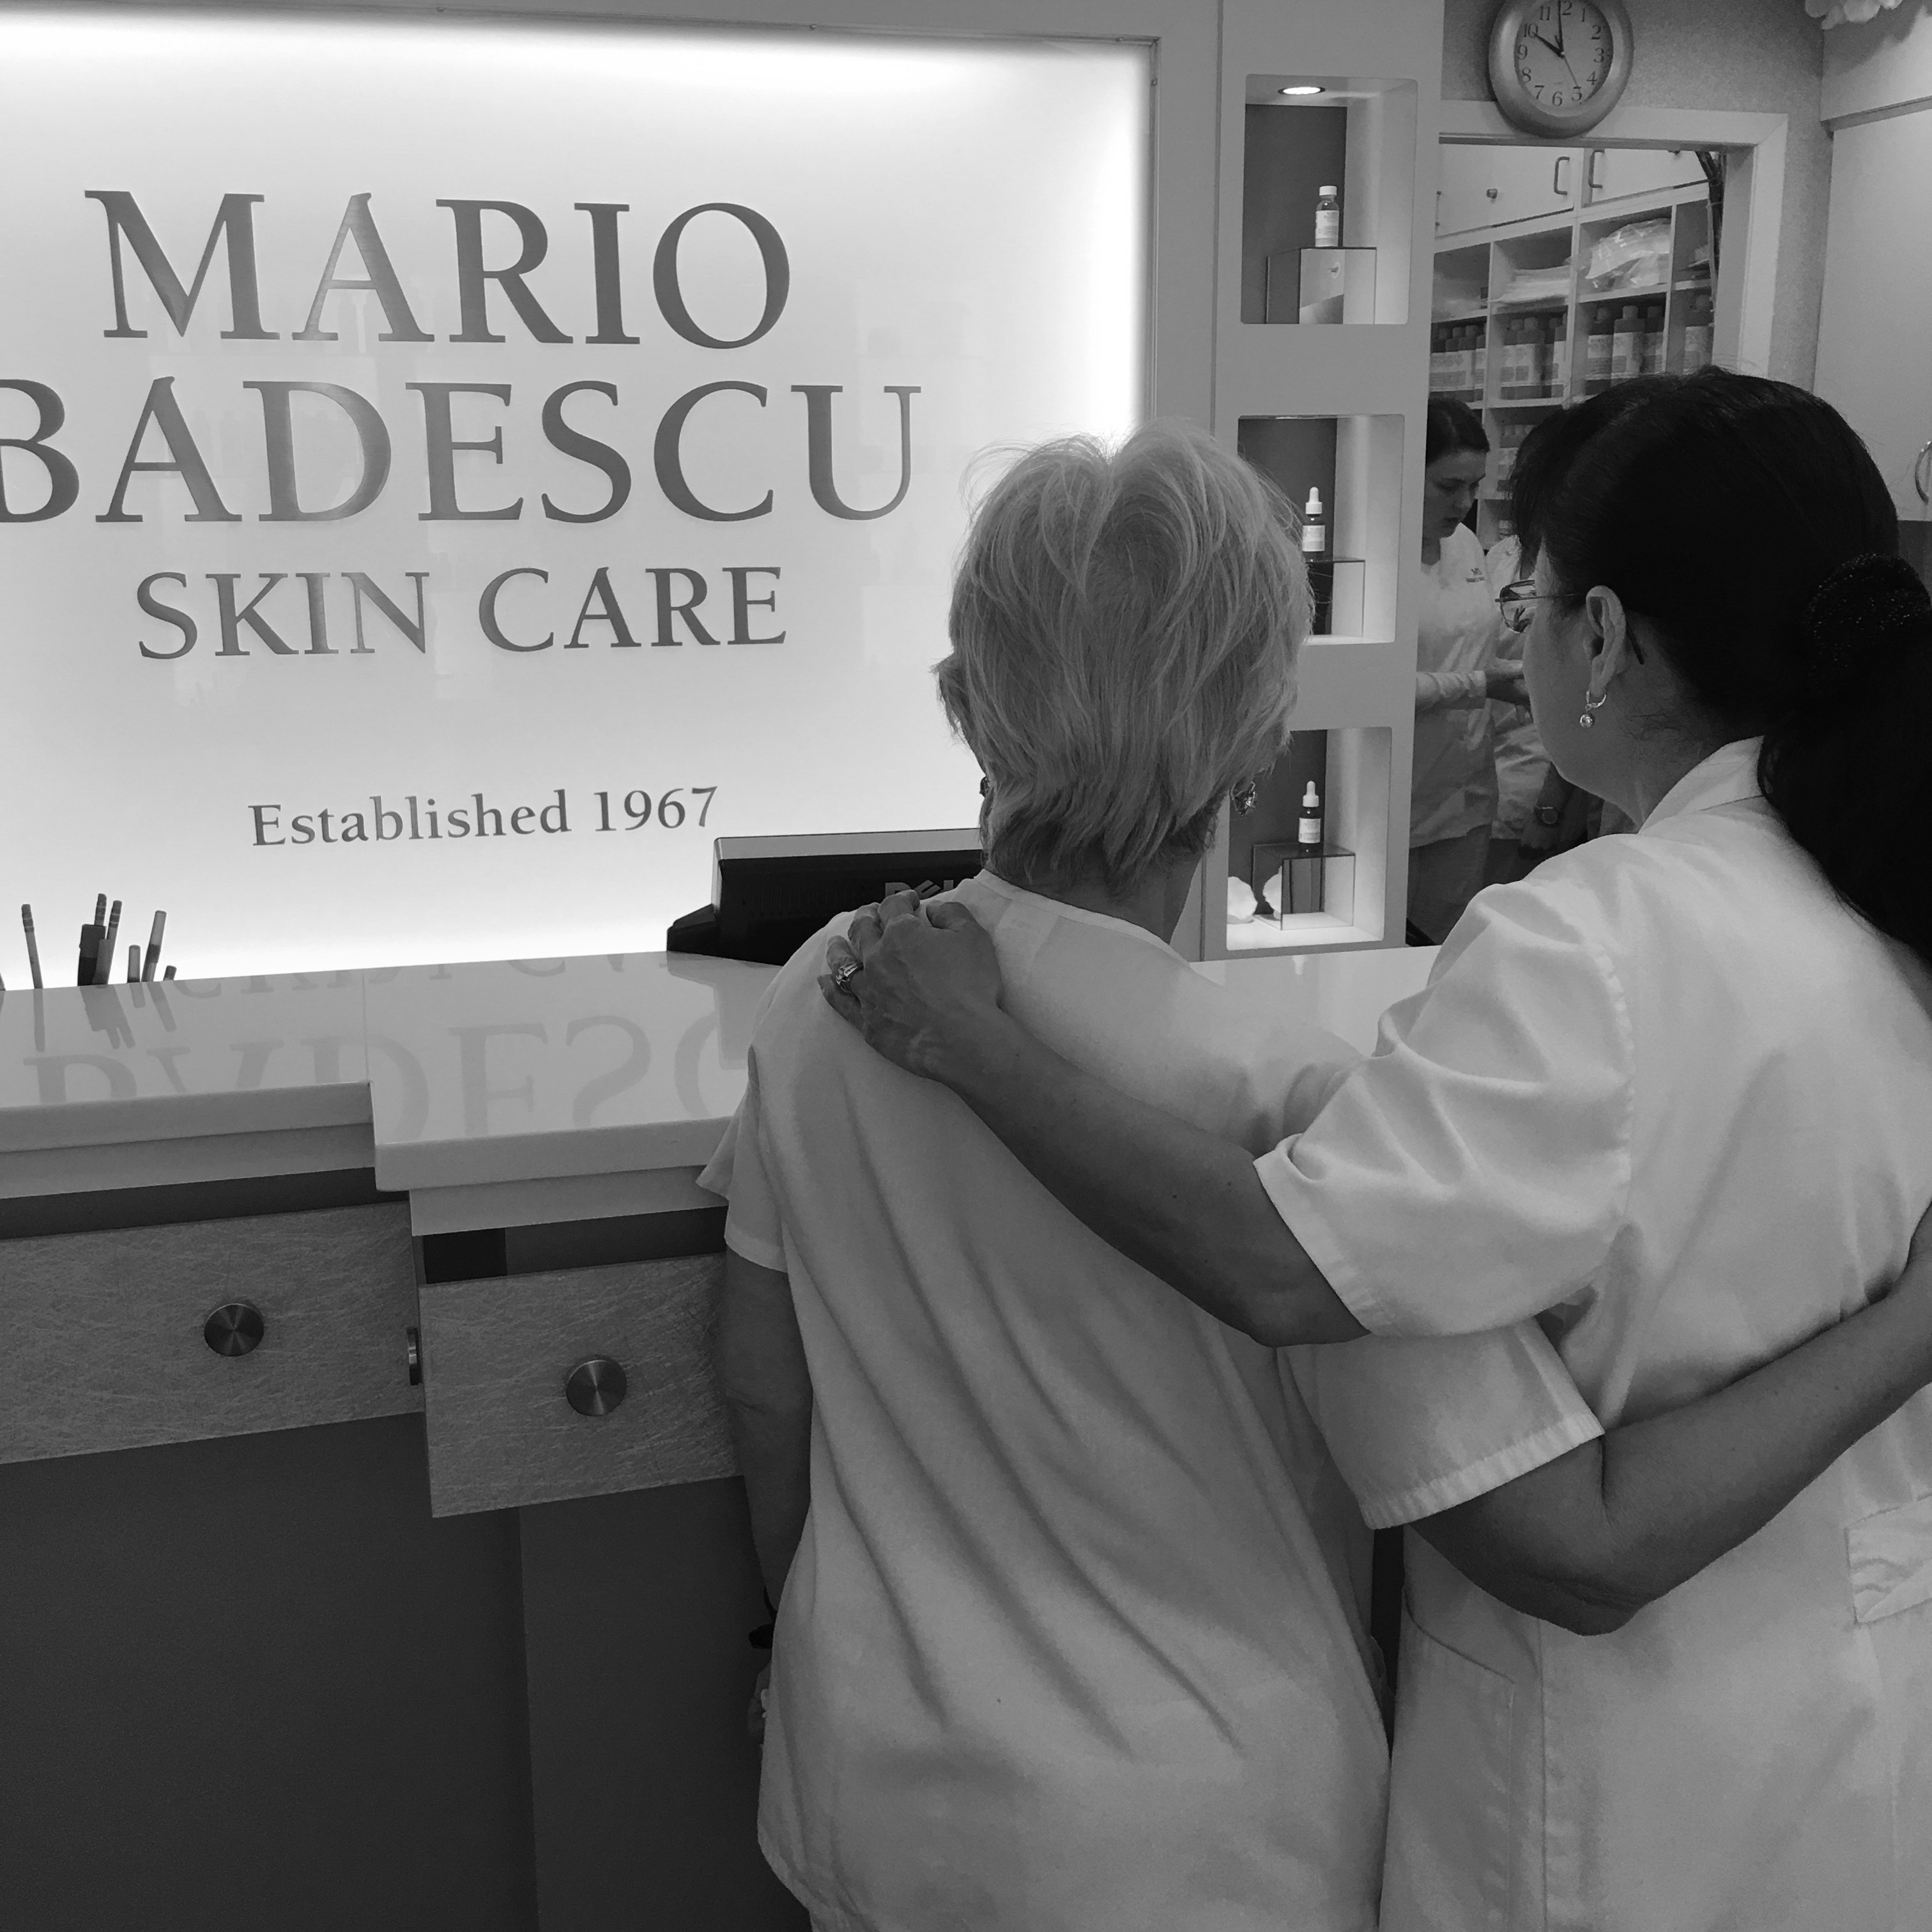 Mario Badescu Spa give New Year's Resolution Skin Care Tips